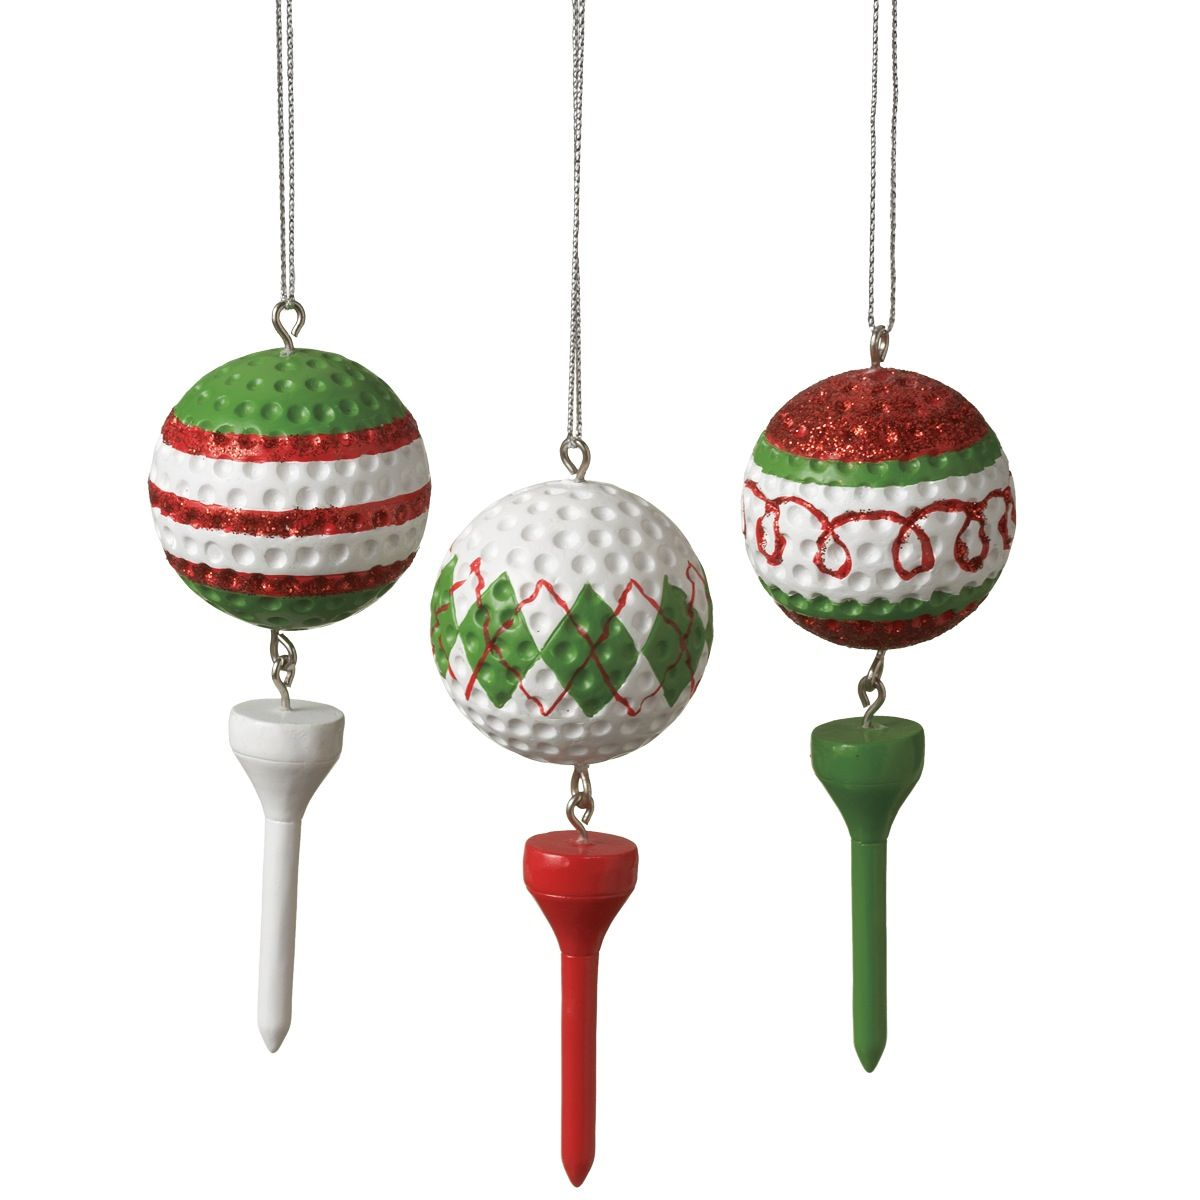 Decorative Christmas Ball Ornaments: Golf Ball & Tee Ornaments …